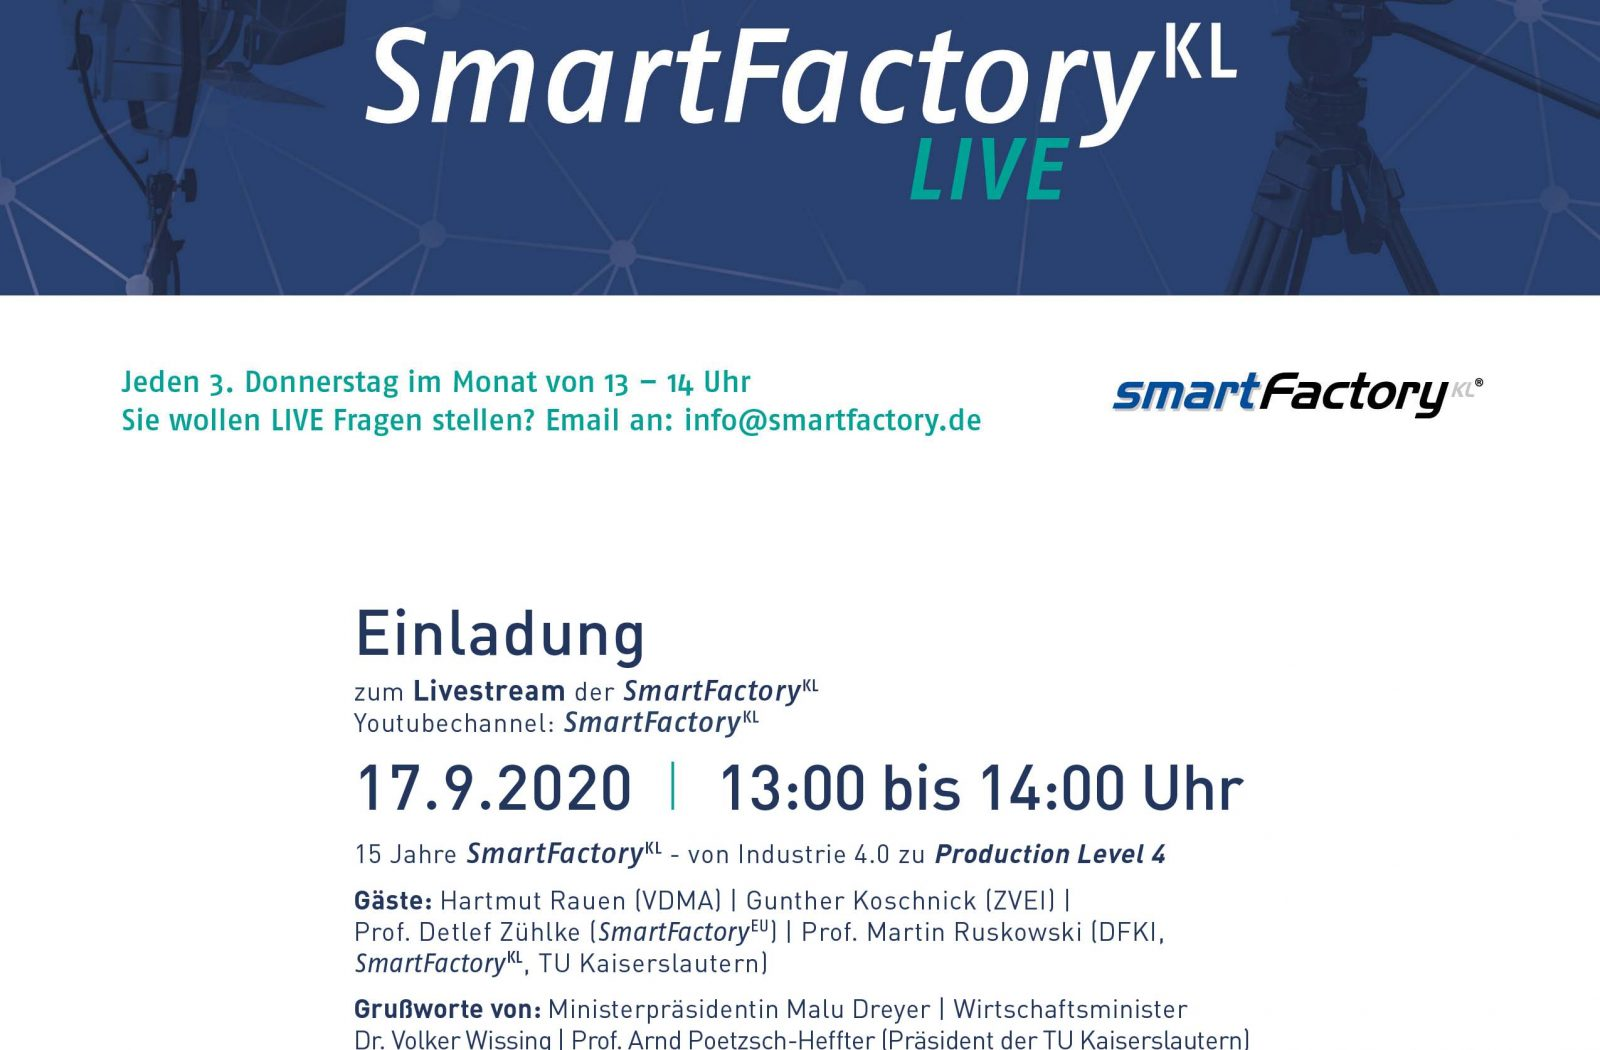 SmartFactory-KL LIVE startet am 17.9.2020 ab 13 Uhr auf YouTube [VIDEO]